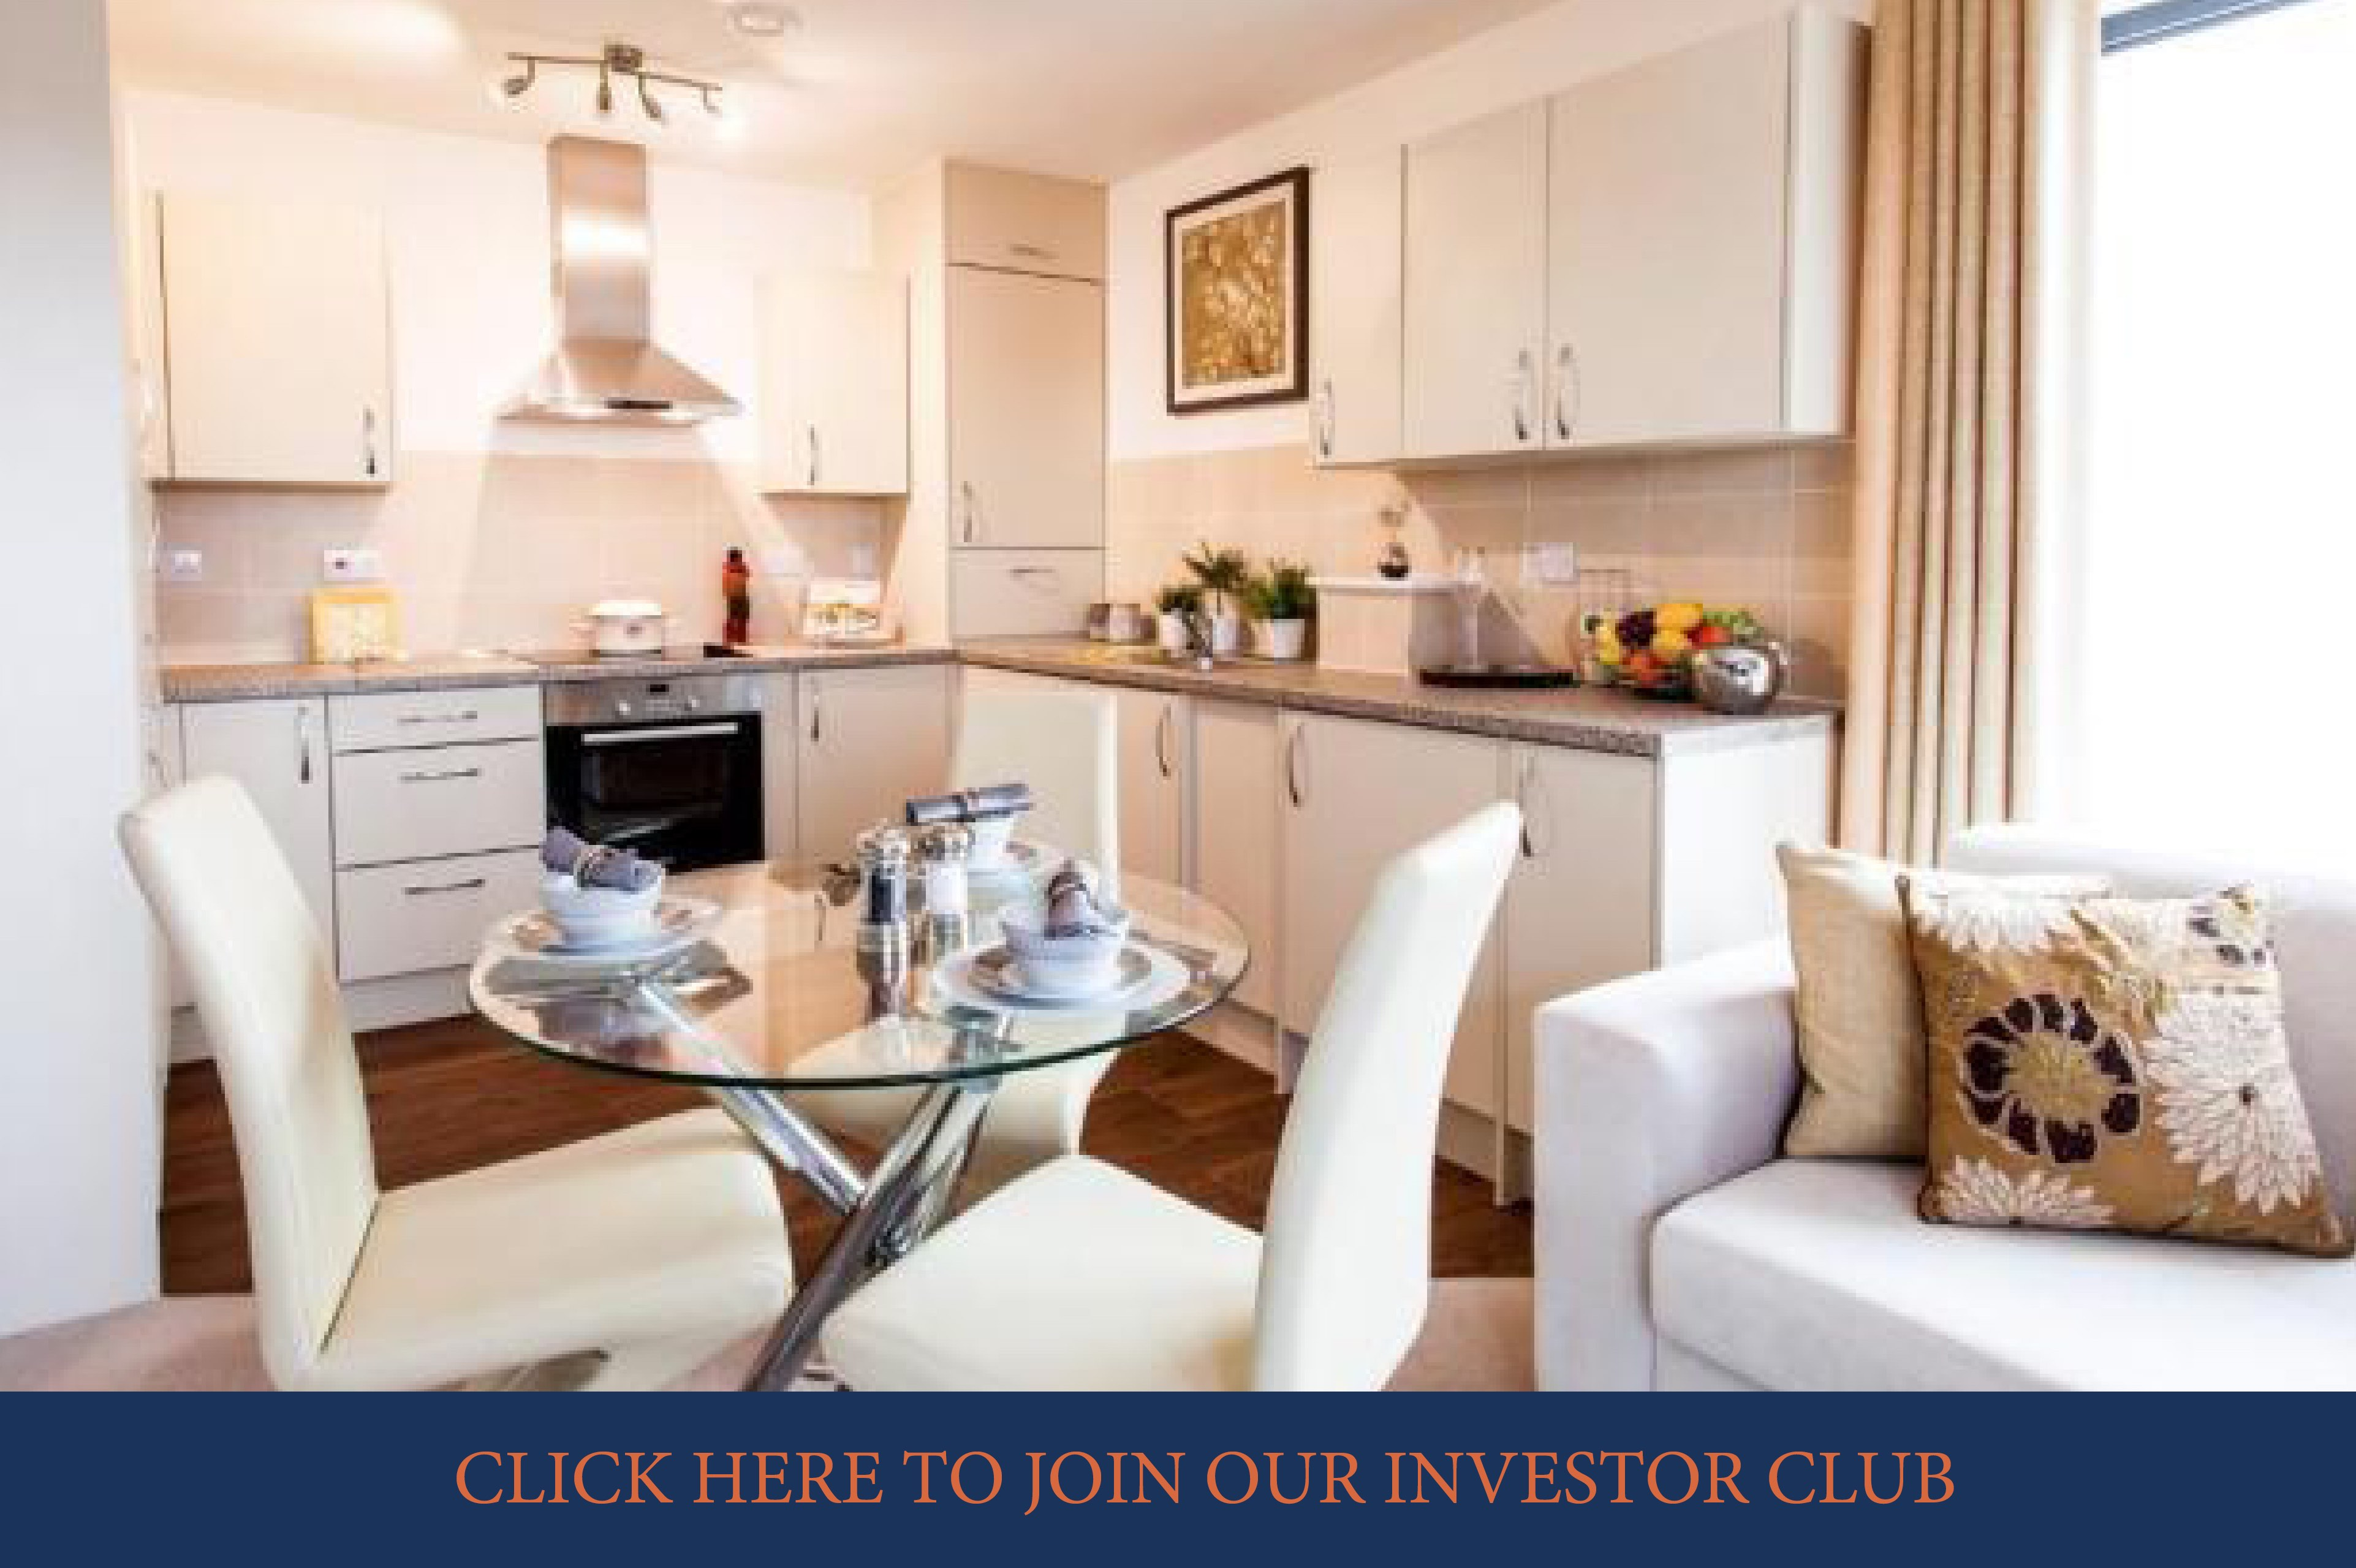 JOIN INVESTOR CLUB CANTERBURY